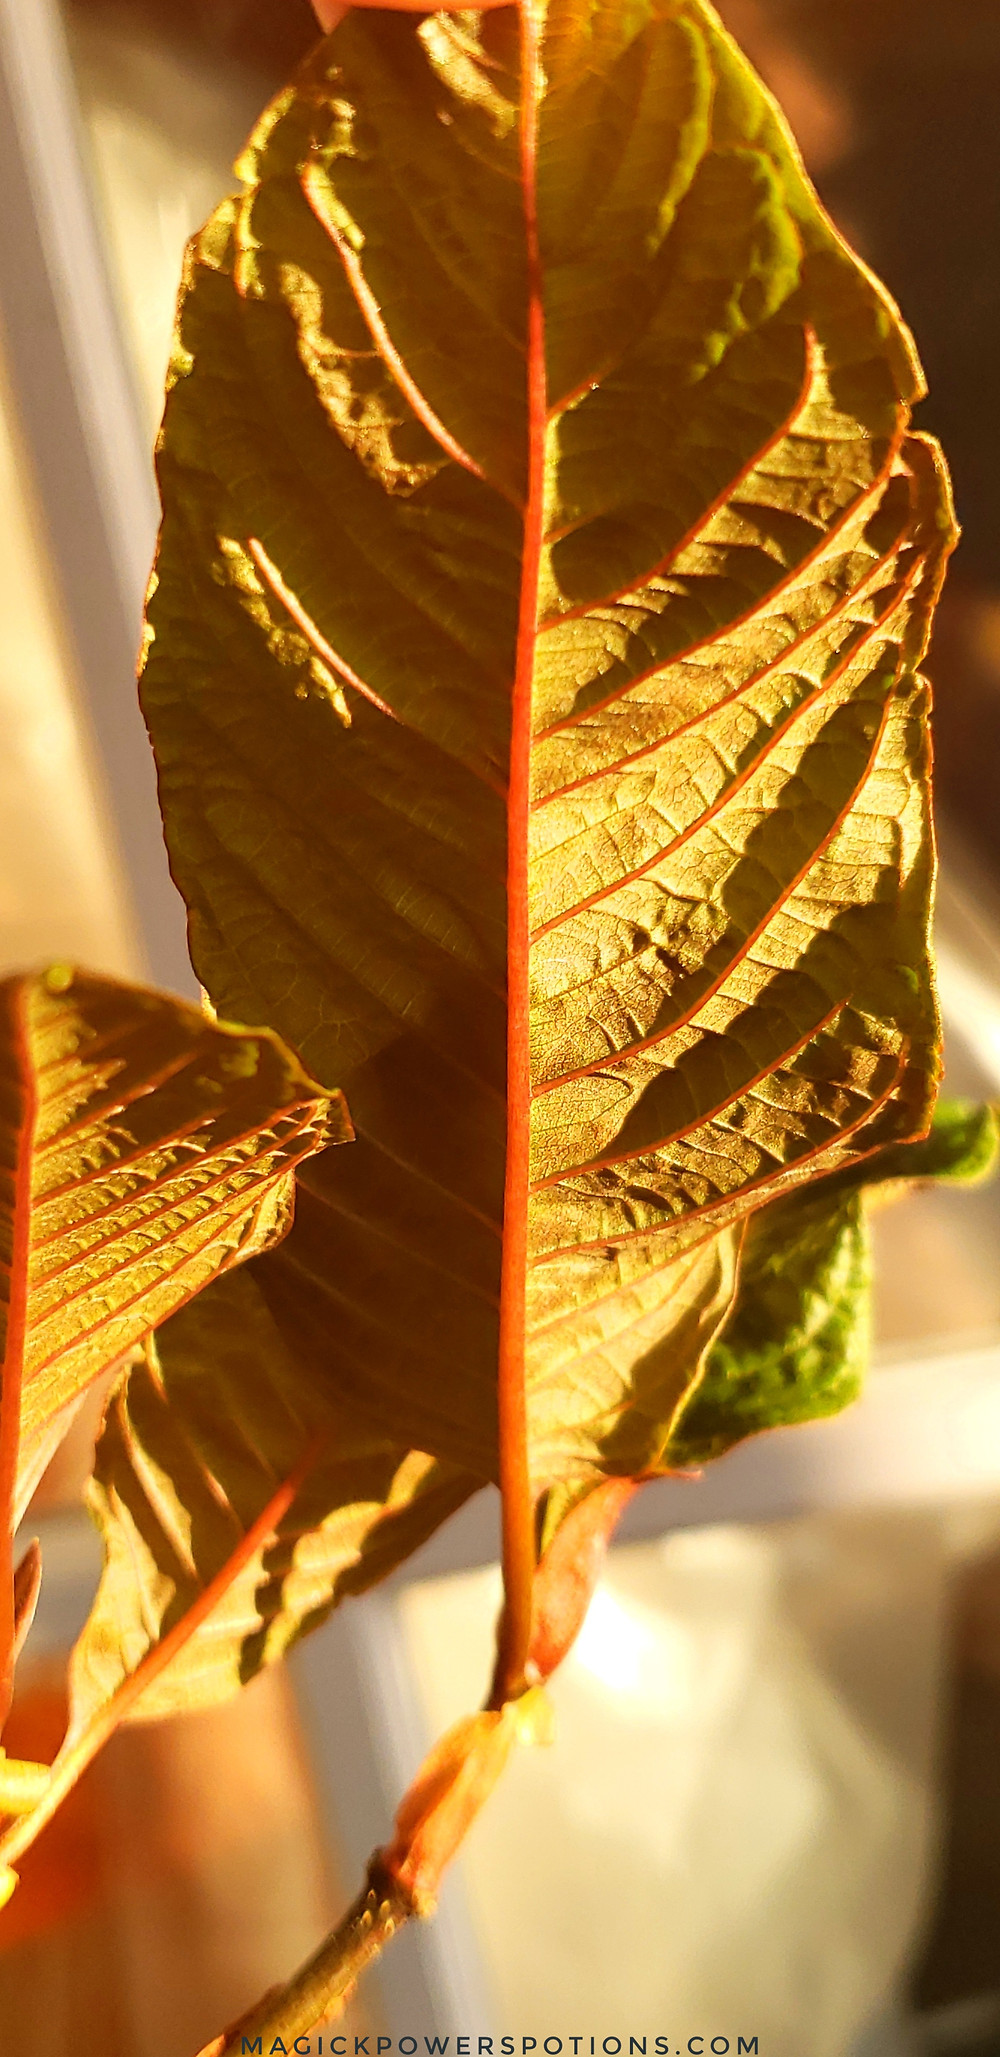 This glorious kratom leaf stands erect in the sunlight, engorged with life and moisture. The leaf is continuing to expand and unfurl, and it will grow in size as it further stretches open.